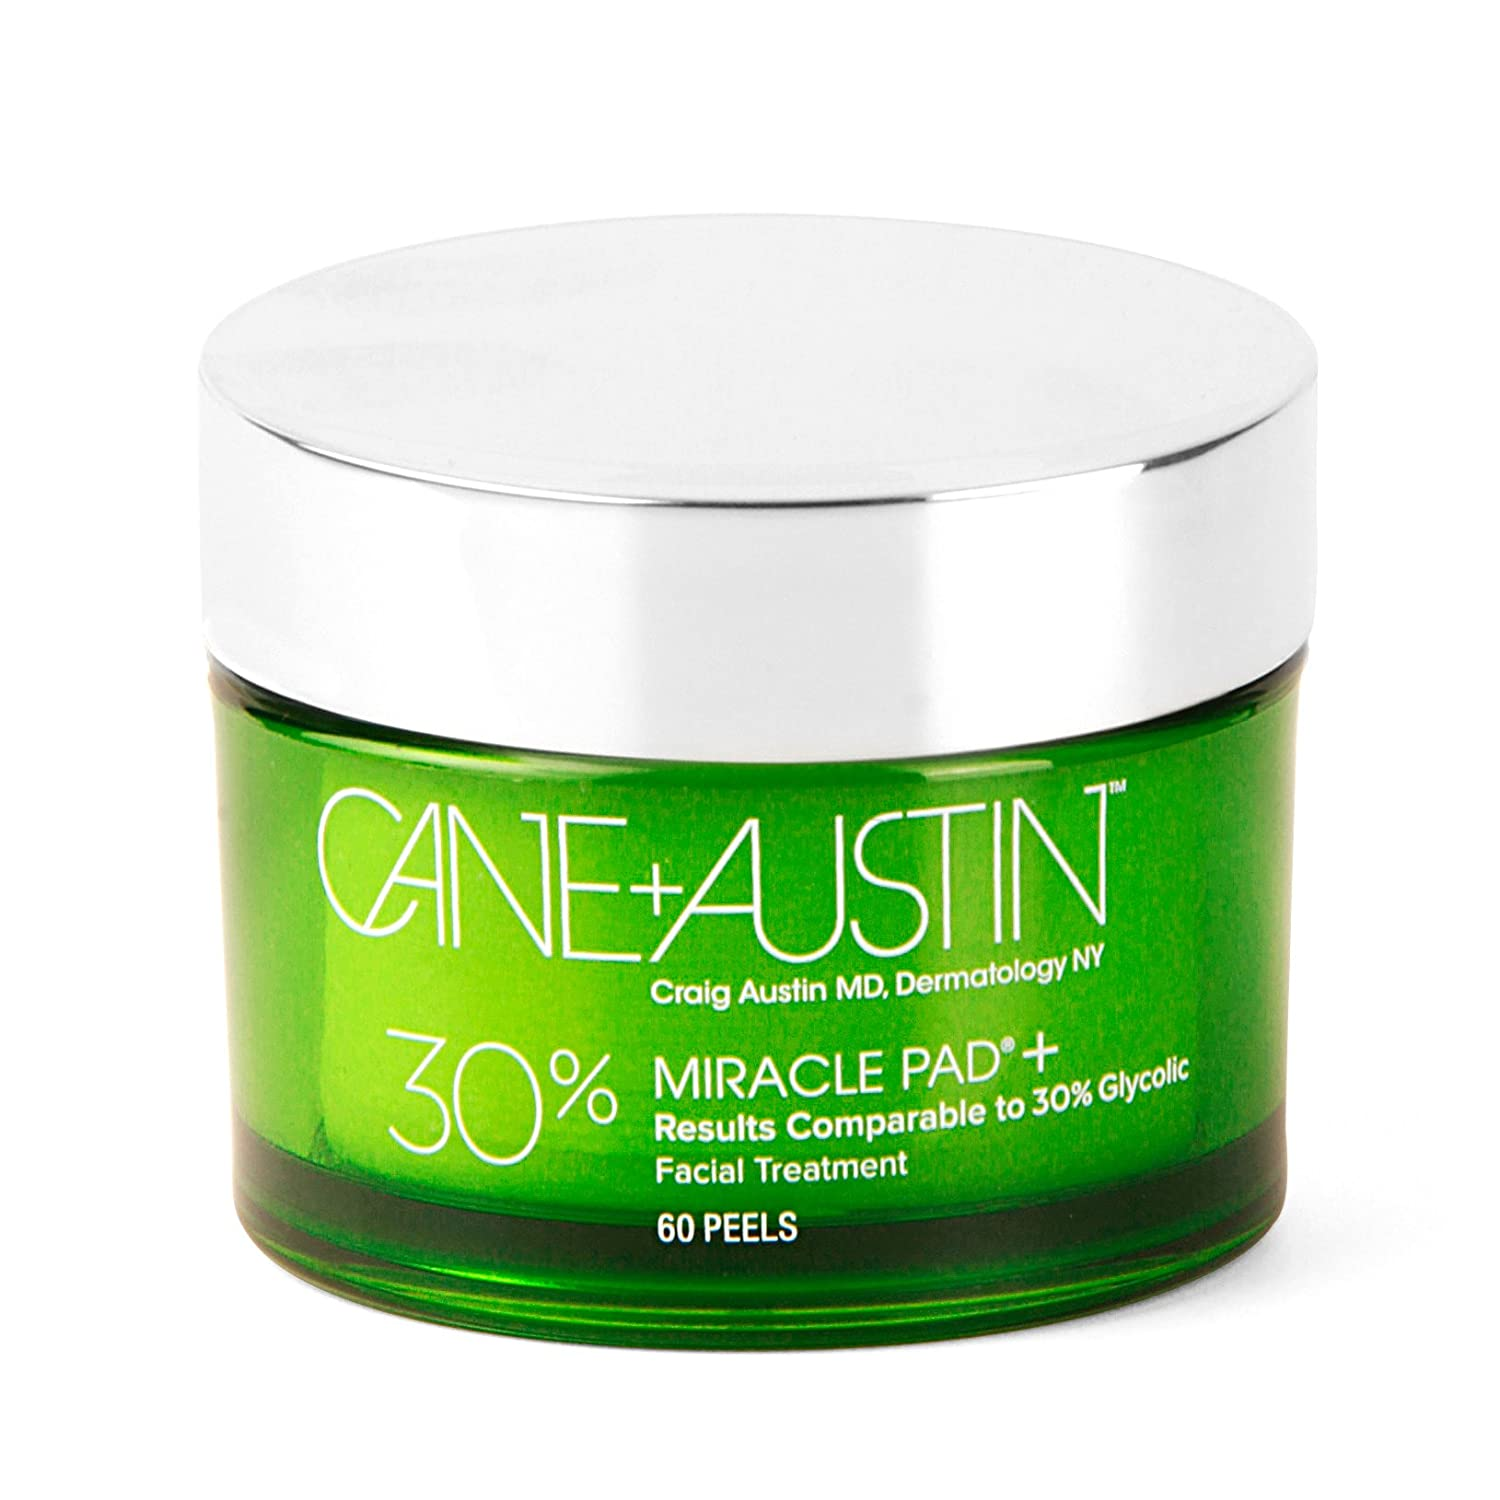 CANE + AUSTIN Miracle Pad Plus, 30% Glycolic Acid Exfoliating Face Peel, 60 pads